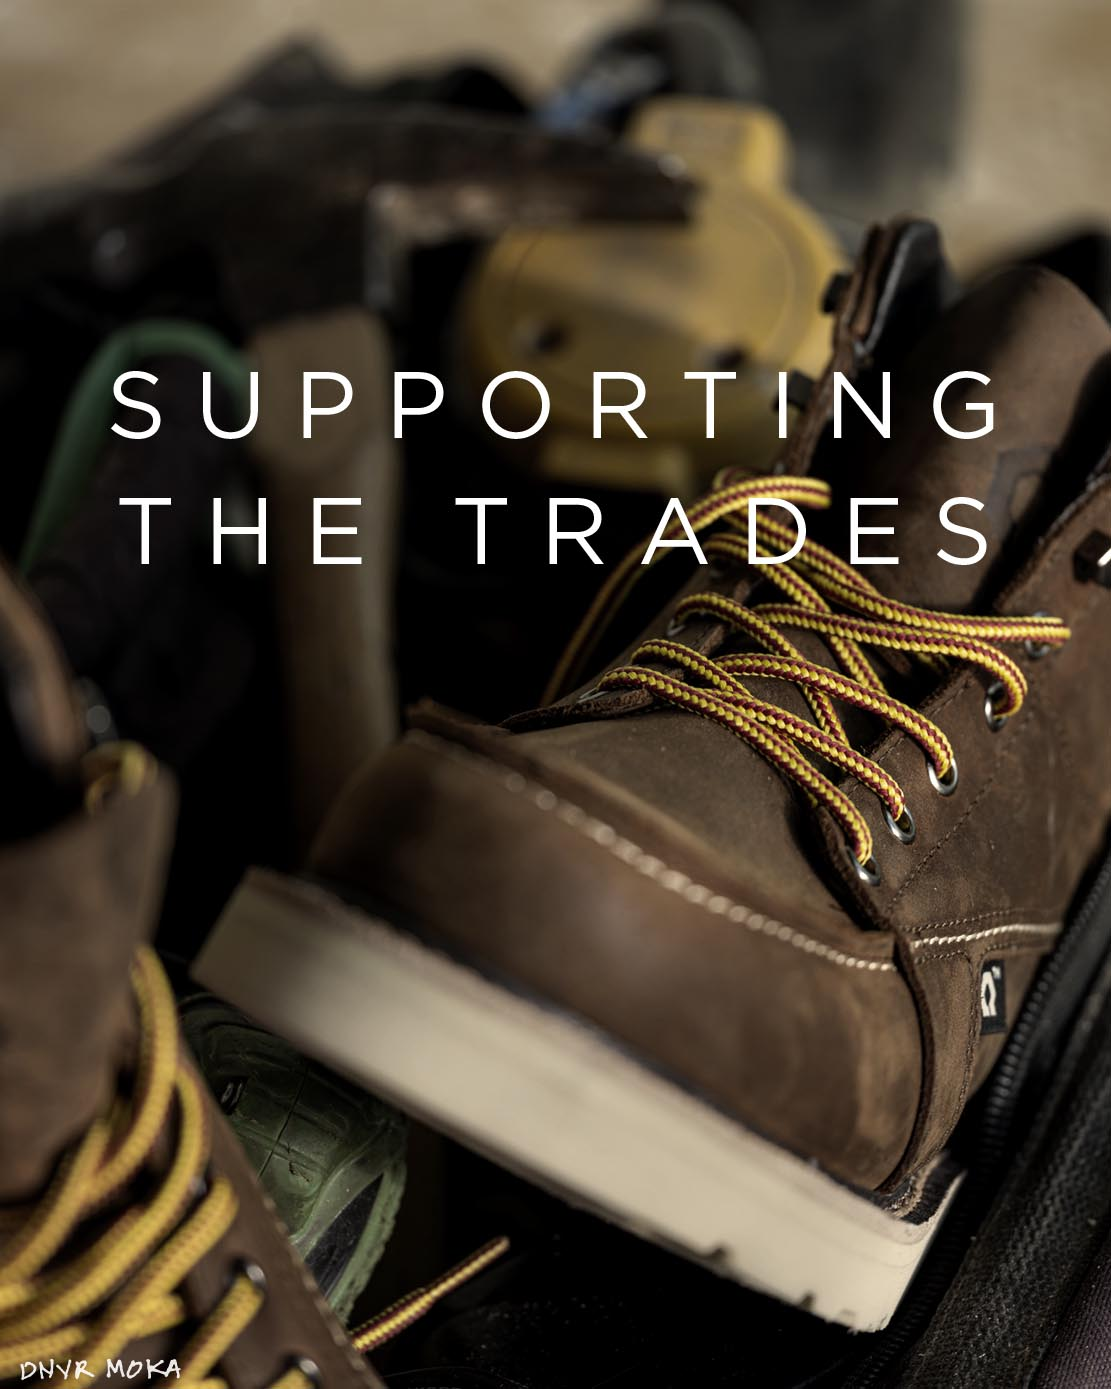 Supporting trade schools